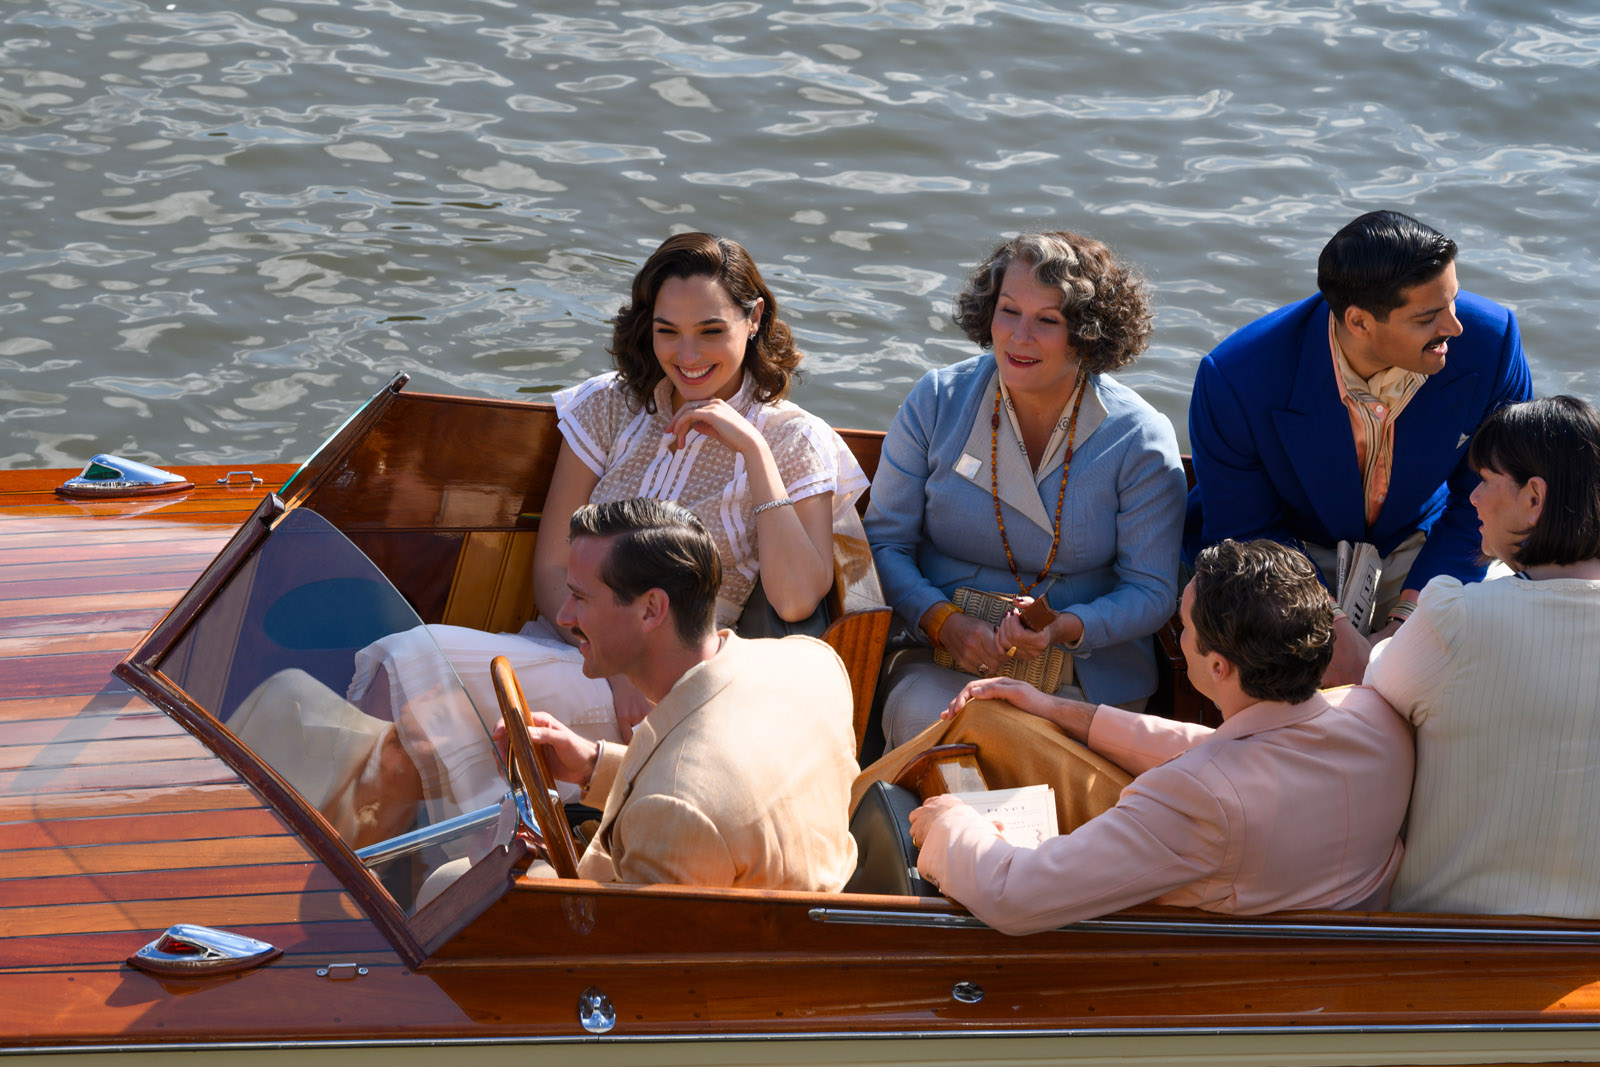 (clockwise from top left) Gal Gadot as Linnet Ridgeway, Jennifer Saunders as Marie Van Schuyler, Ali Fazal as Andrew Katchadourian, Dawn French as Bowers, Tom Bateman as Bouc and Armie Hammer as Simon Doyle in 20th Century Studios' DEATH ON THE NILE, a mystery-thriller directed by Kenneth Branagh based on Agatha Christie's 1937 novel. Photo by Rob Youngson. © 2020 Twentieth Century Fox Film Corporation. All Rights Reserved.